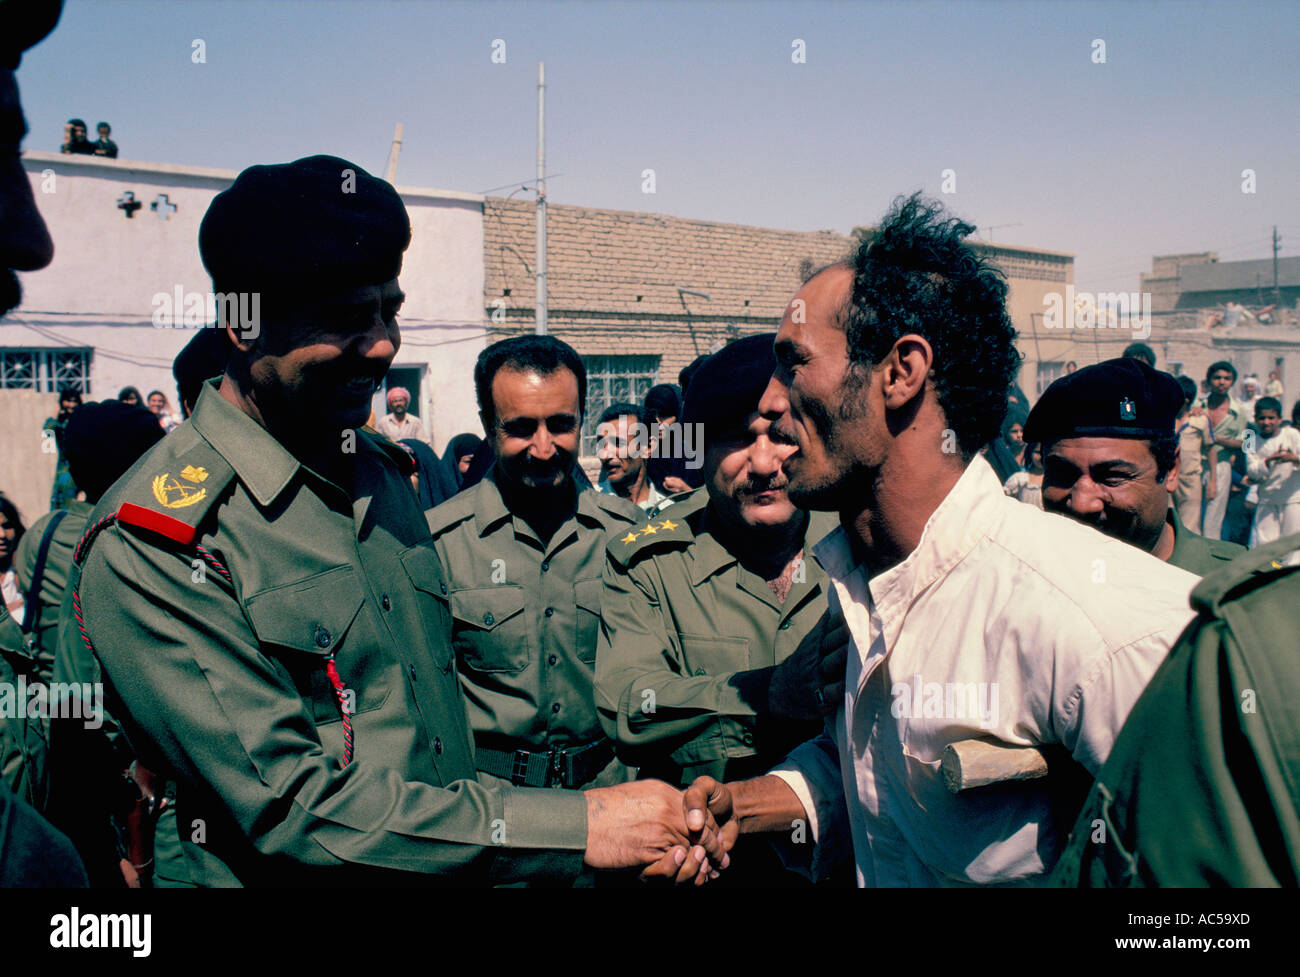 Saddam hussein i uniform i dag